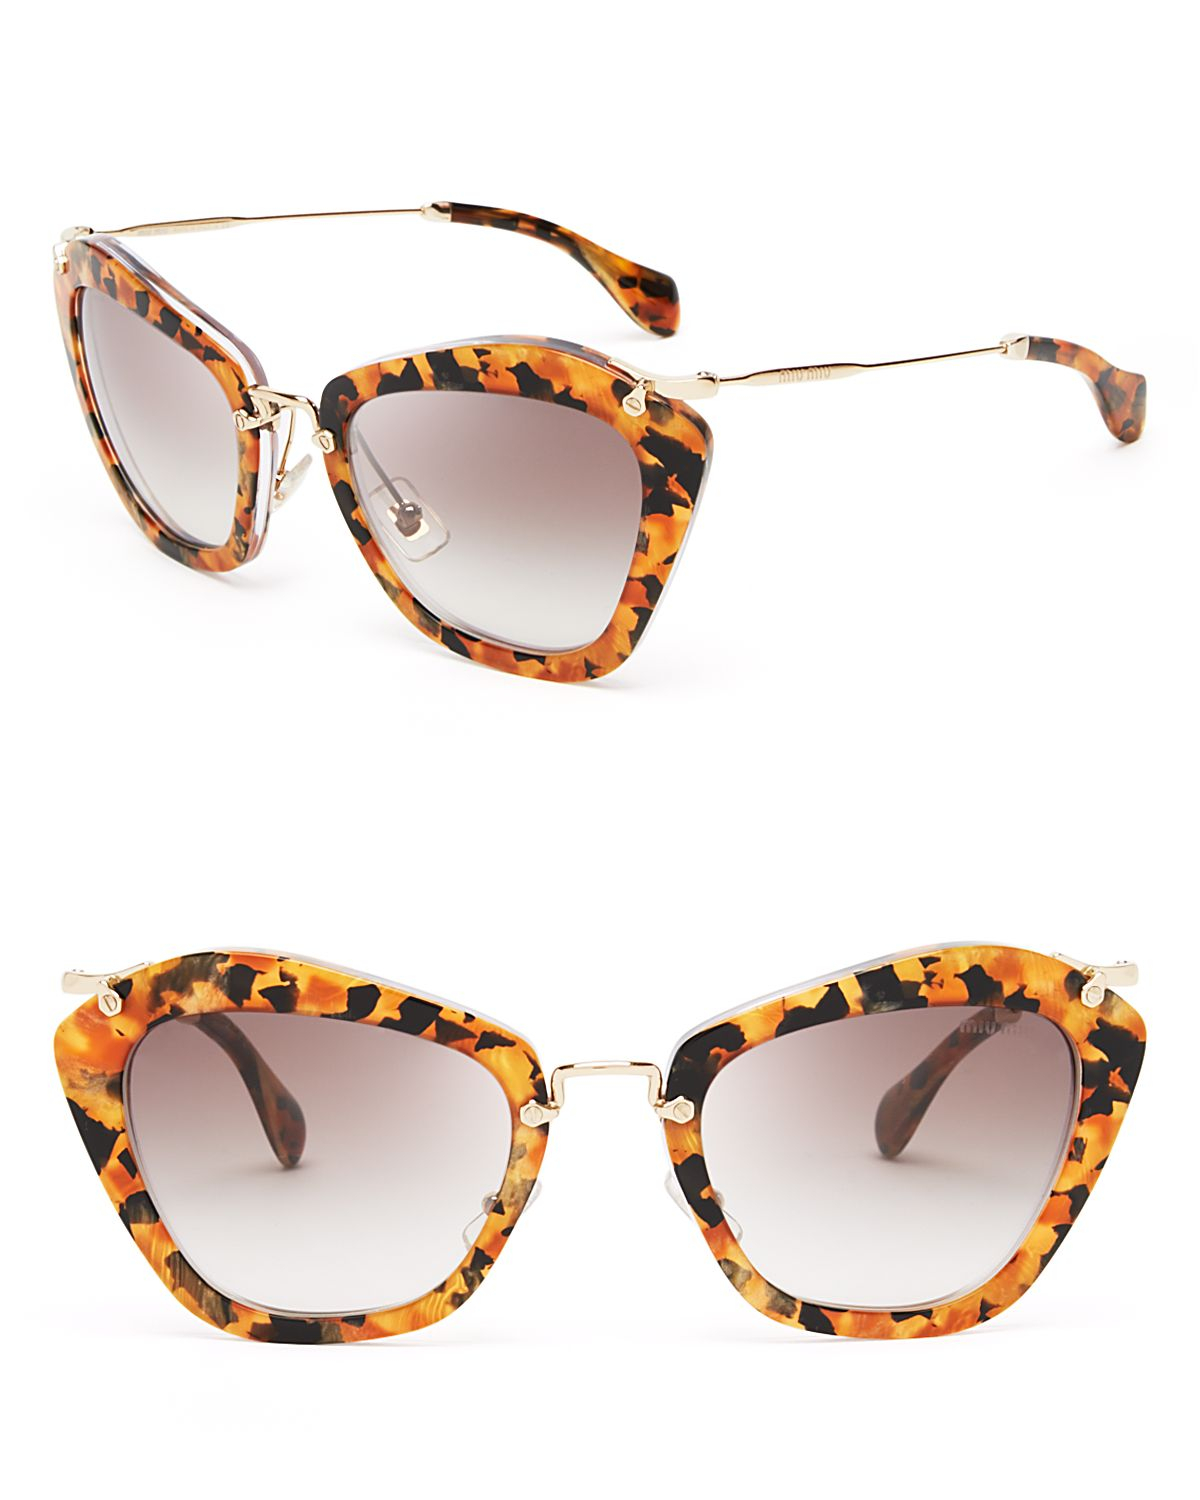 new style 695af a2244 Miu Miu Sunglasses Cat Eye Ebay | Louisiana Bucket Brigade